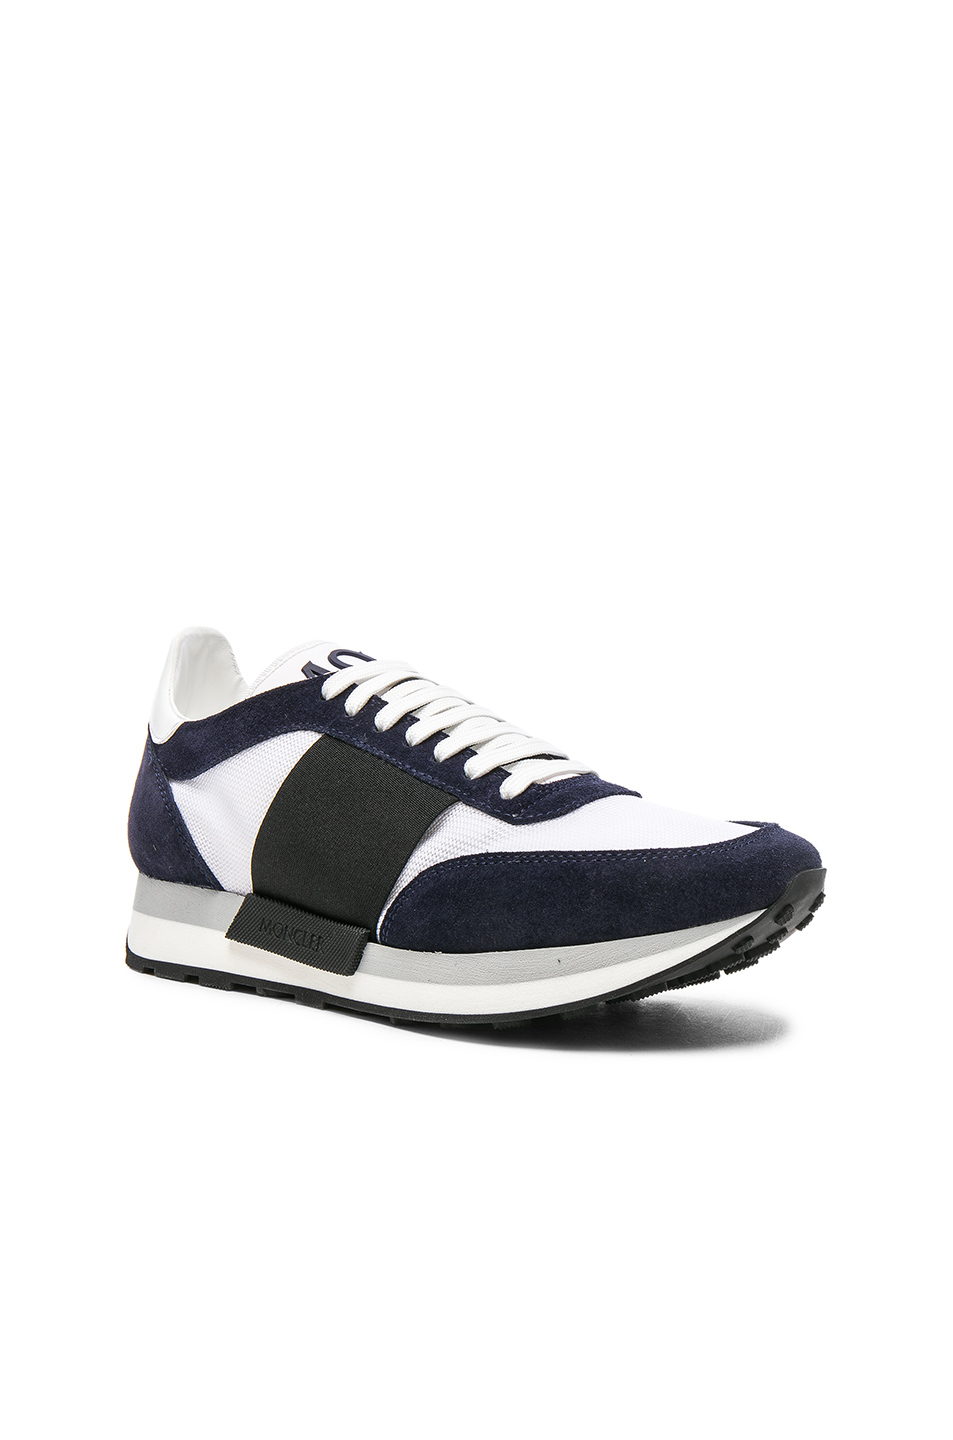 Moncler Horace Sneakers in Blue,White